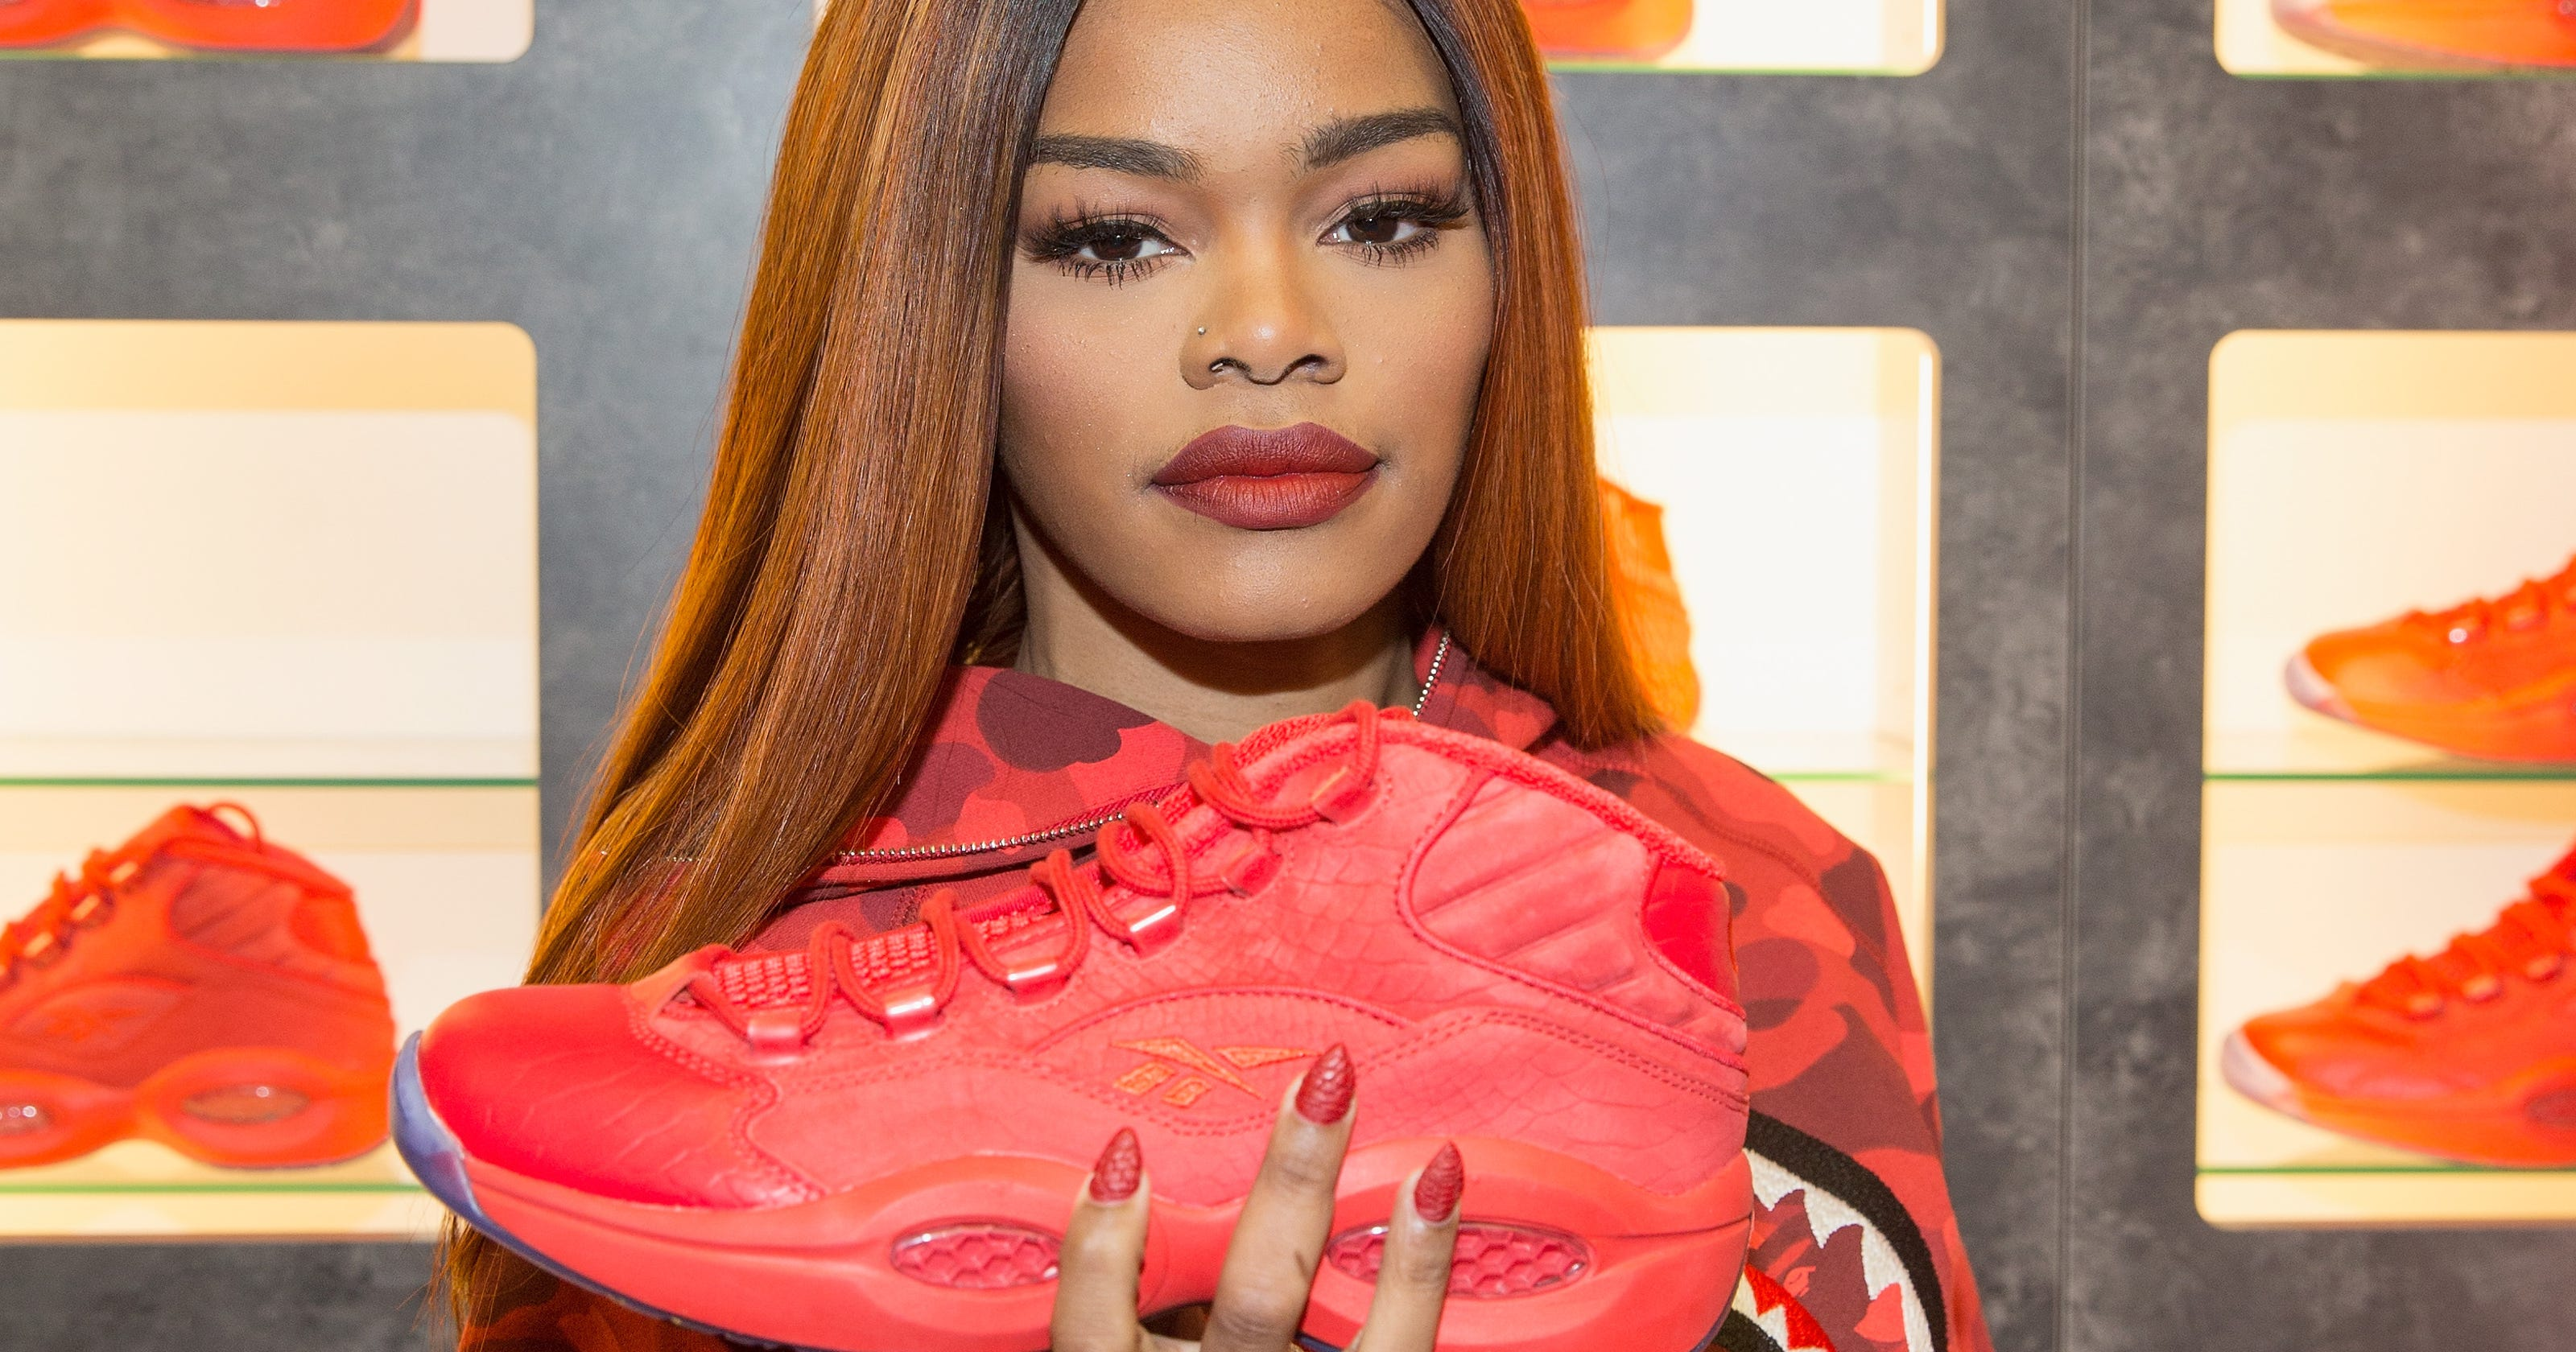 c3163d3c3e8 There s still a chance to buy Teyana Taylor s Reebok Question Mid sneakers